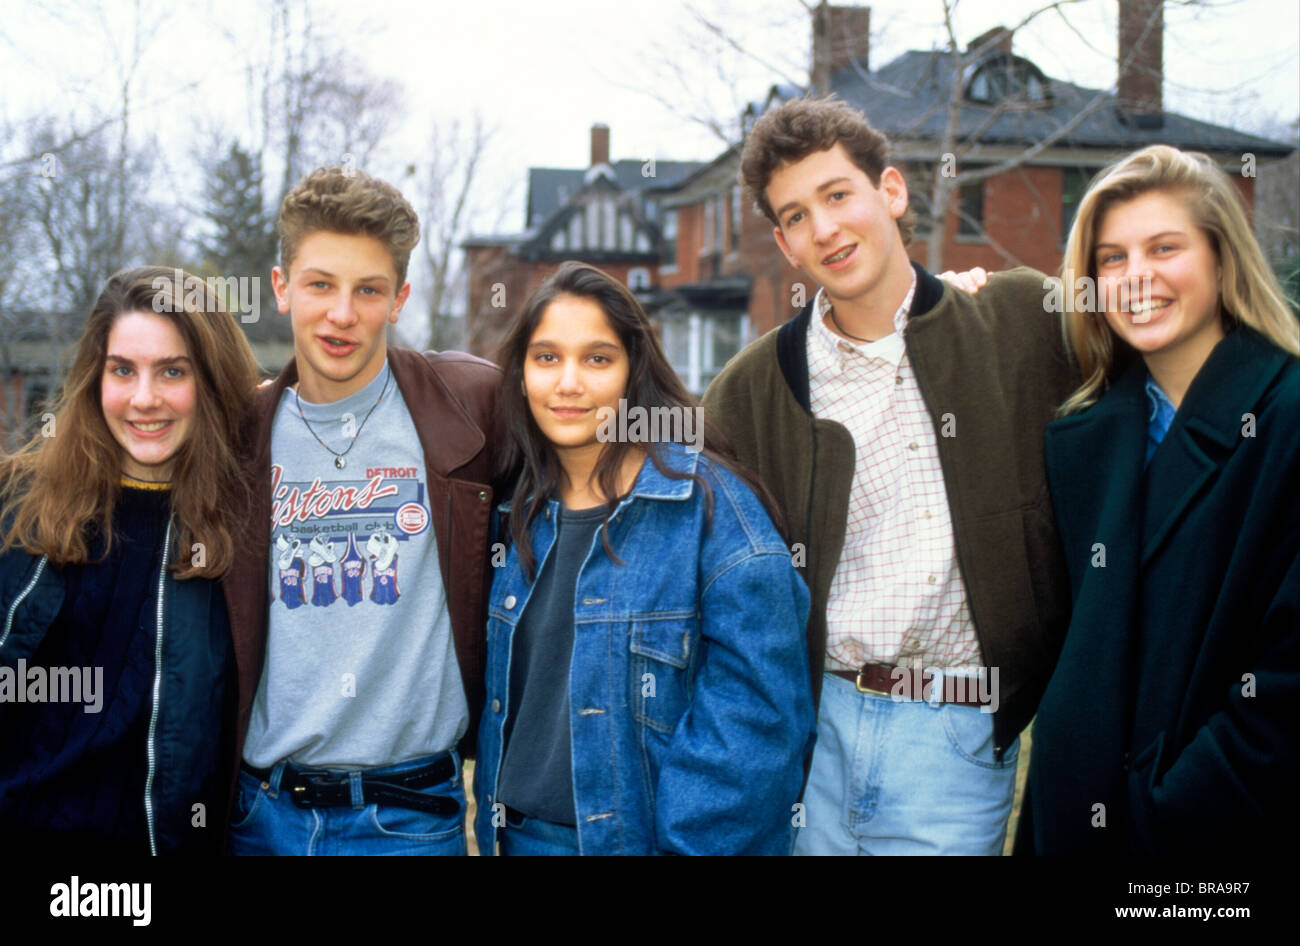 1990s GROUP PORTRAIT OF TWO TEENAGE BOYS AND THREE TEENAGE GIRLS LOOKING AT CAMERA - Stock Image